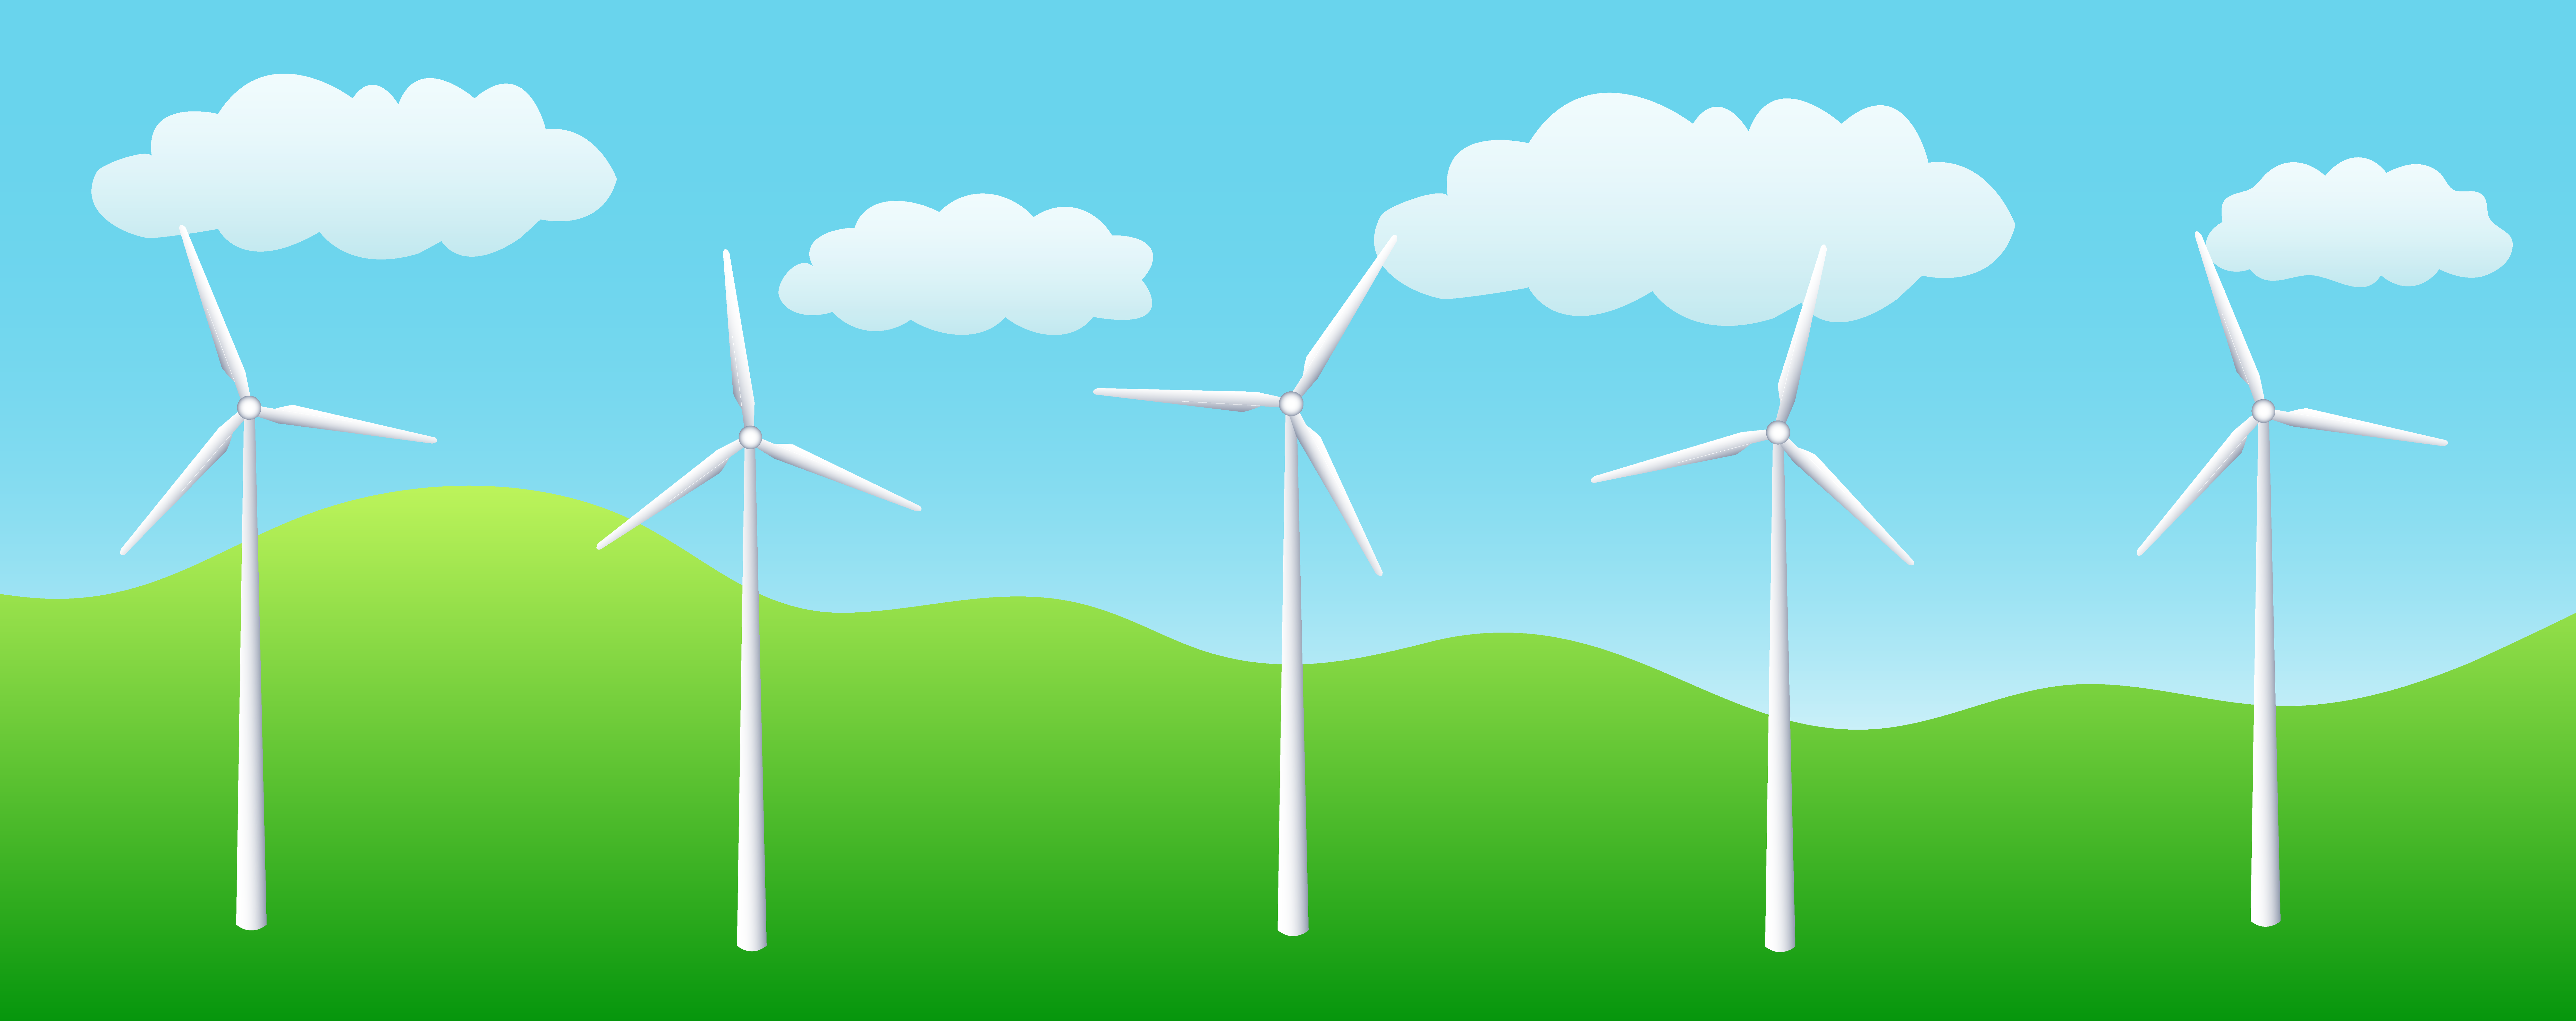 windmill clipart energy source